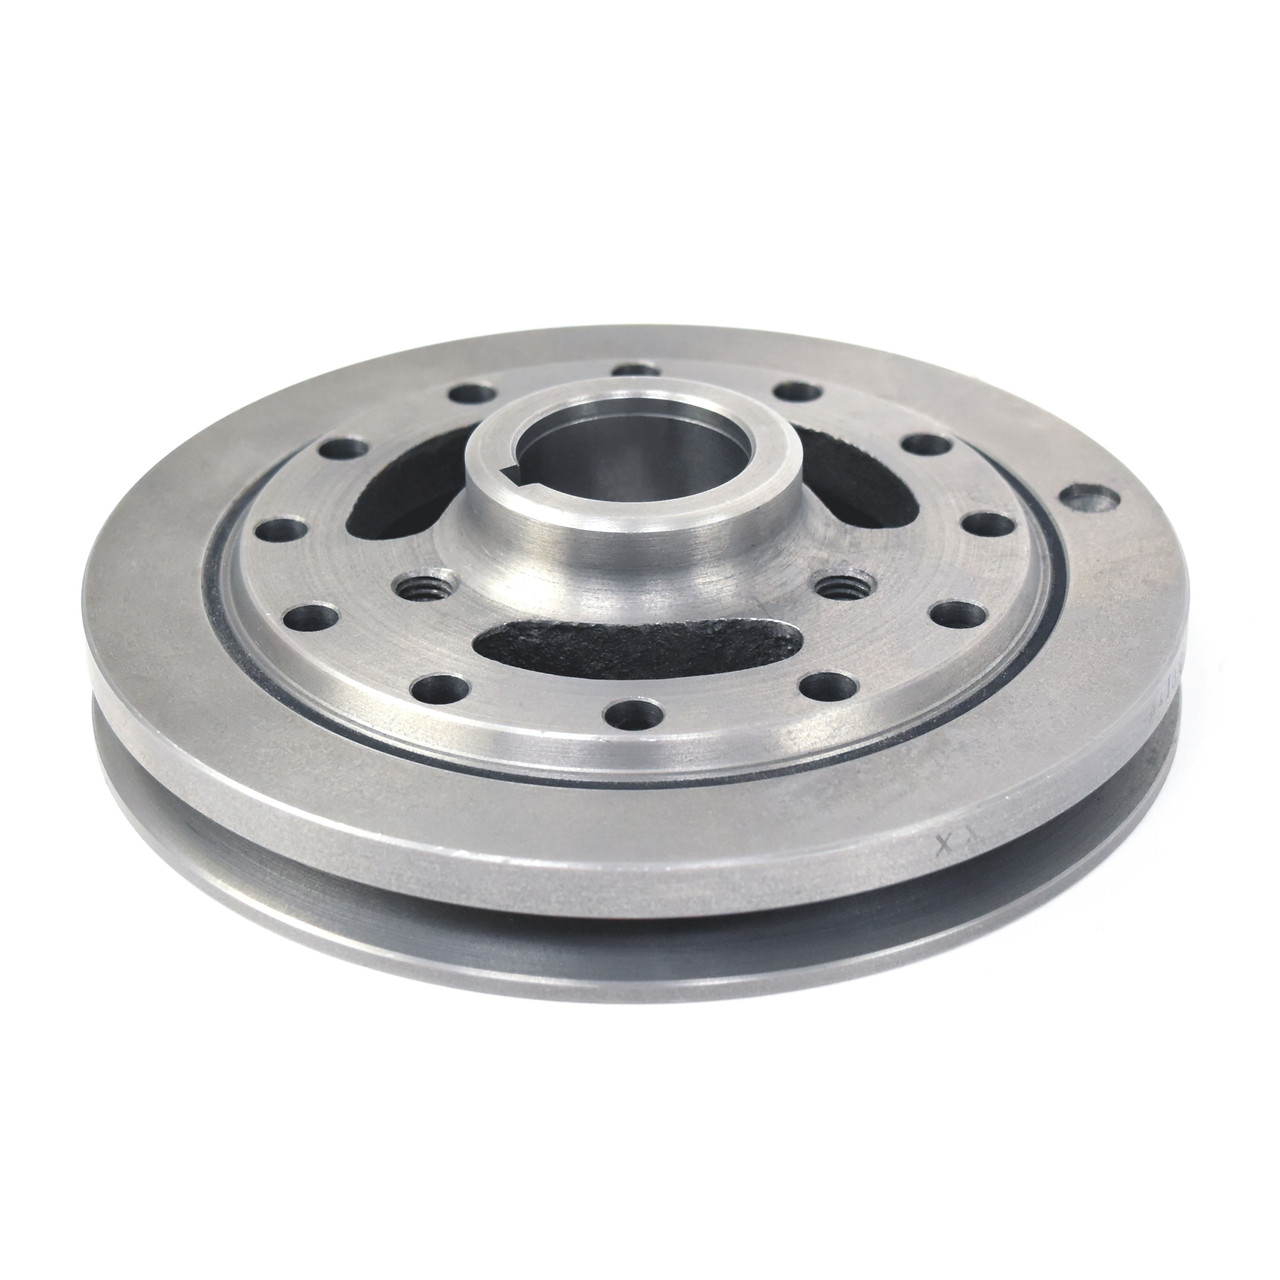 FORD,FALCON to LTD,EA EB ED series 1/&2 A//C 6 cyl,GATES IDLER PULLEY,90mm FLAT od